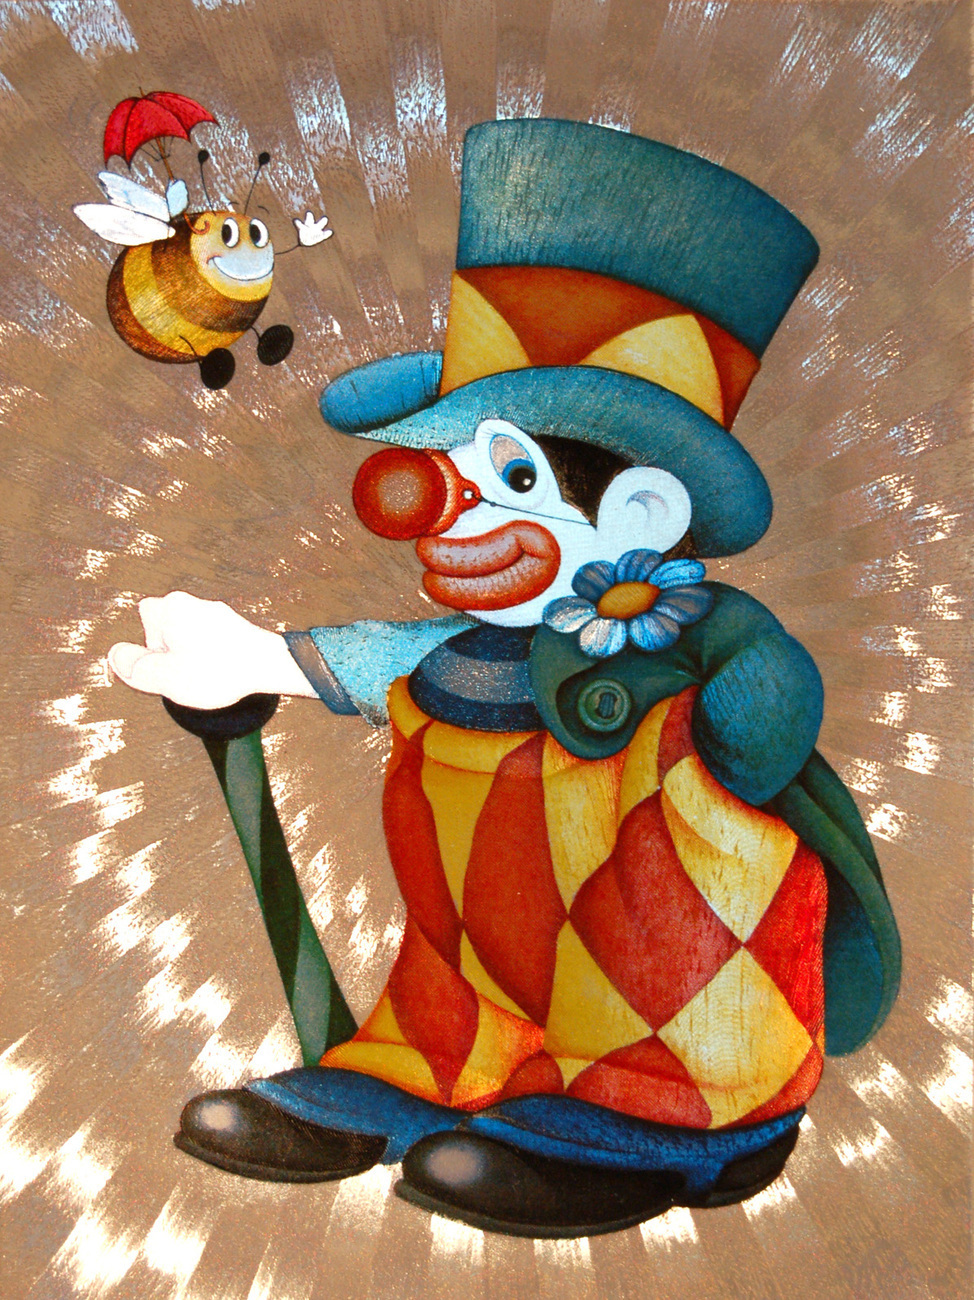 654436_clown_with_bee